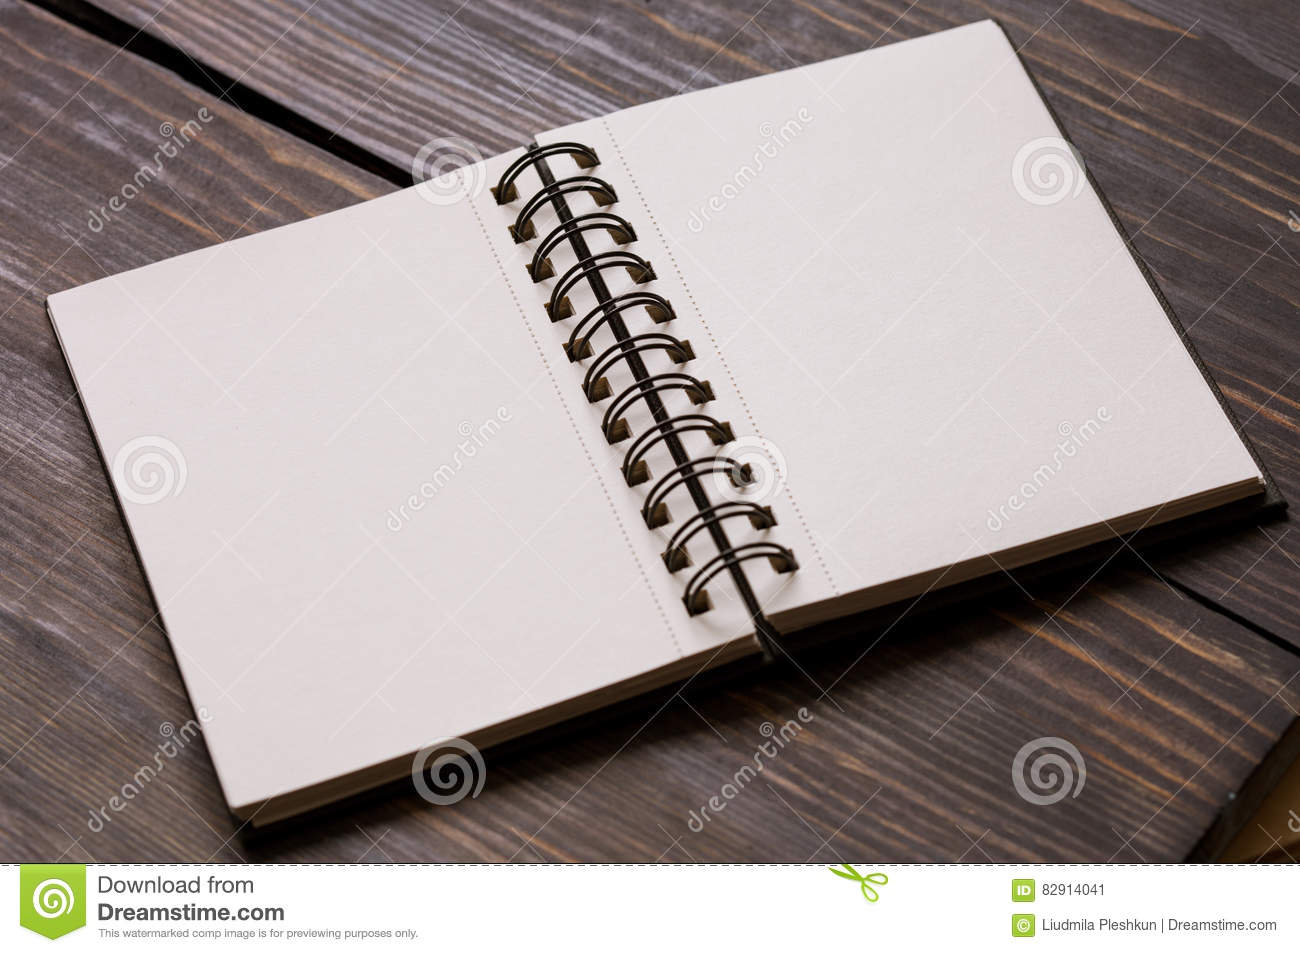 Empty sketchpad stock image  Image of object, design - 82914041